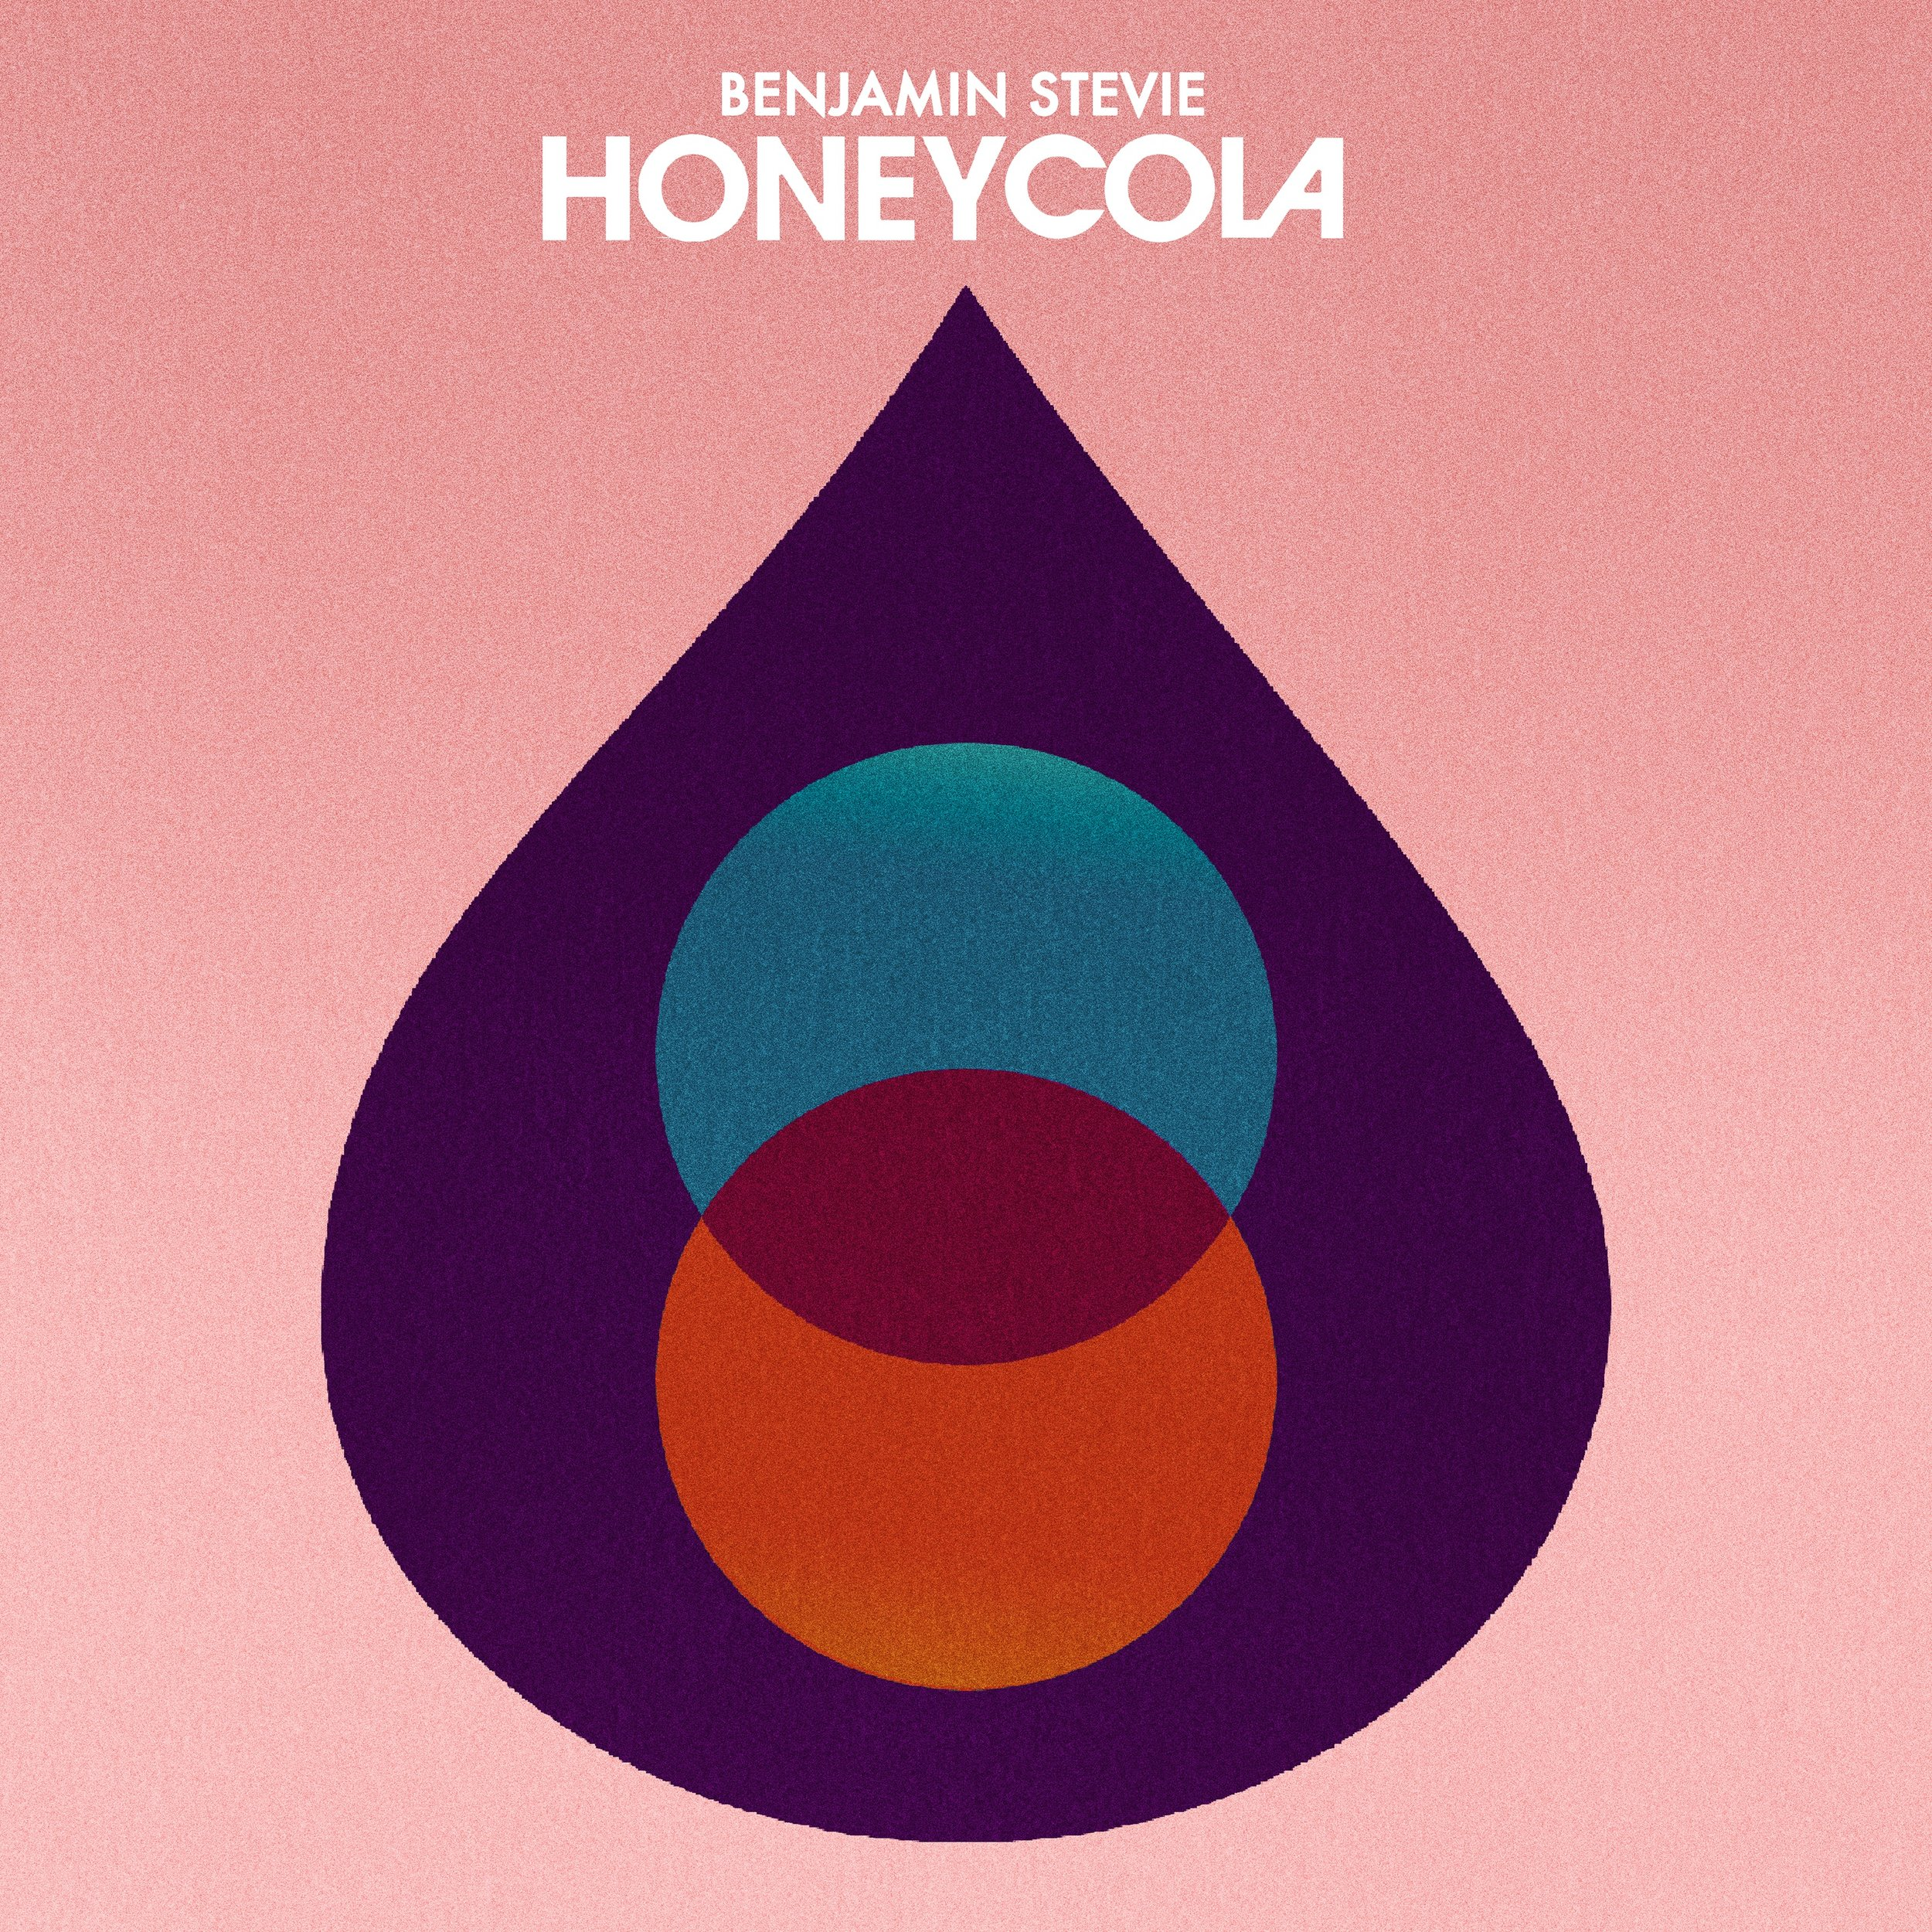 Benjamin Stevie - Honey Cola 3000x3000-400dpi.jpg